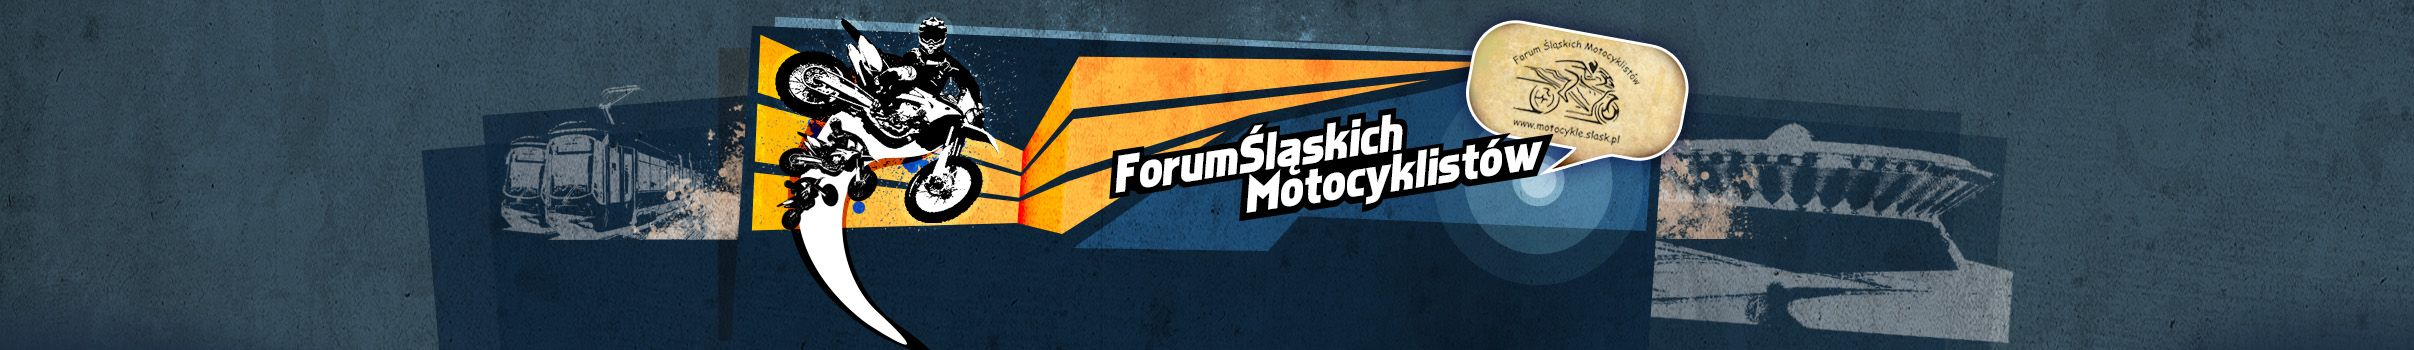 Forum Śląskich Motocyklistów